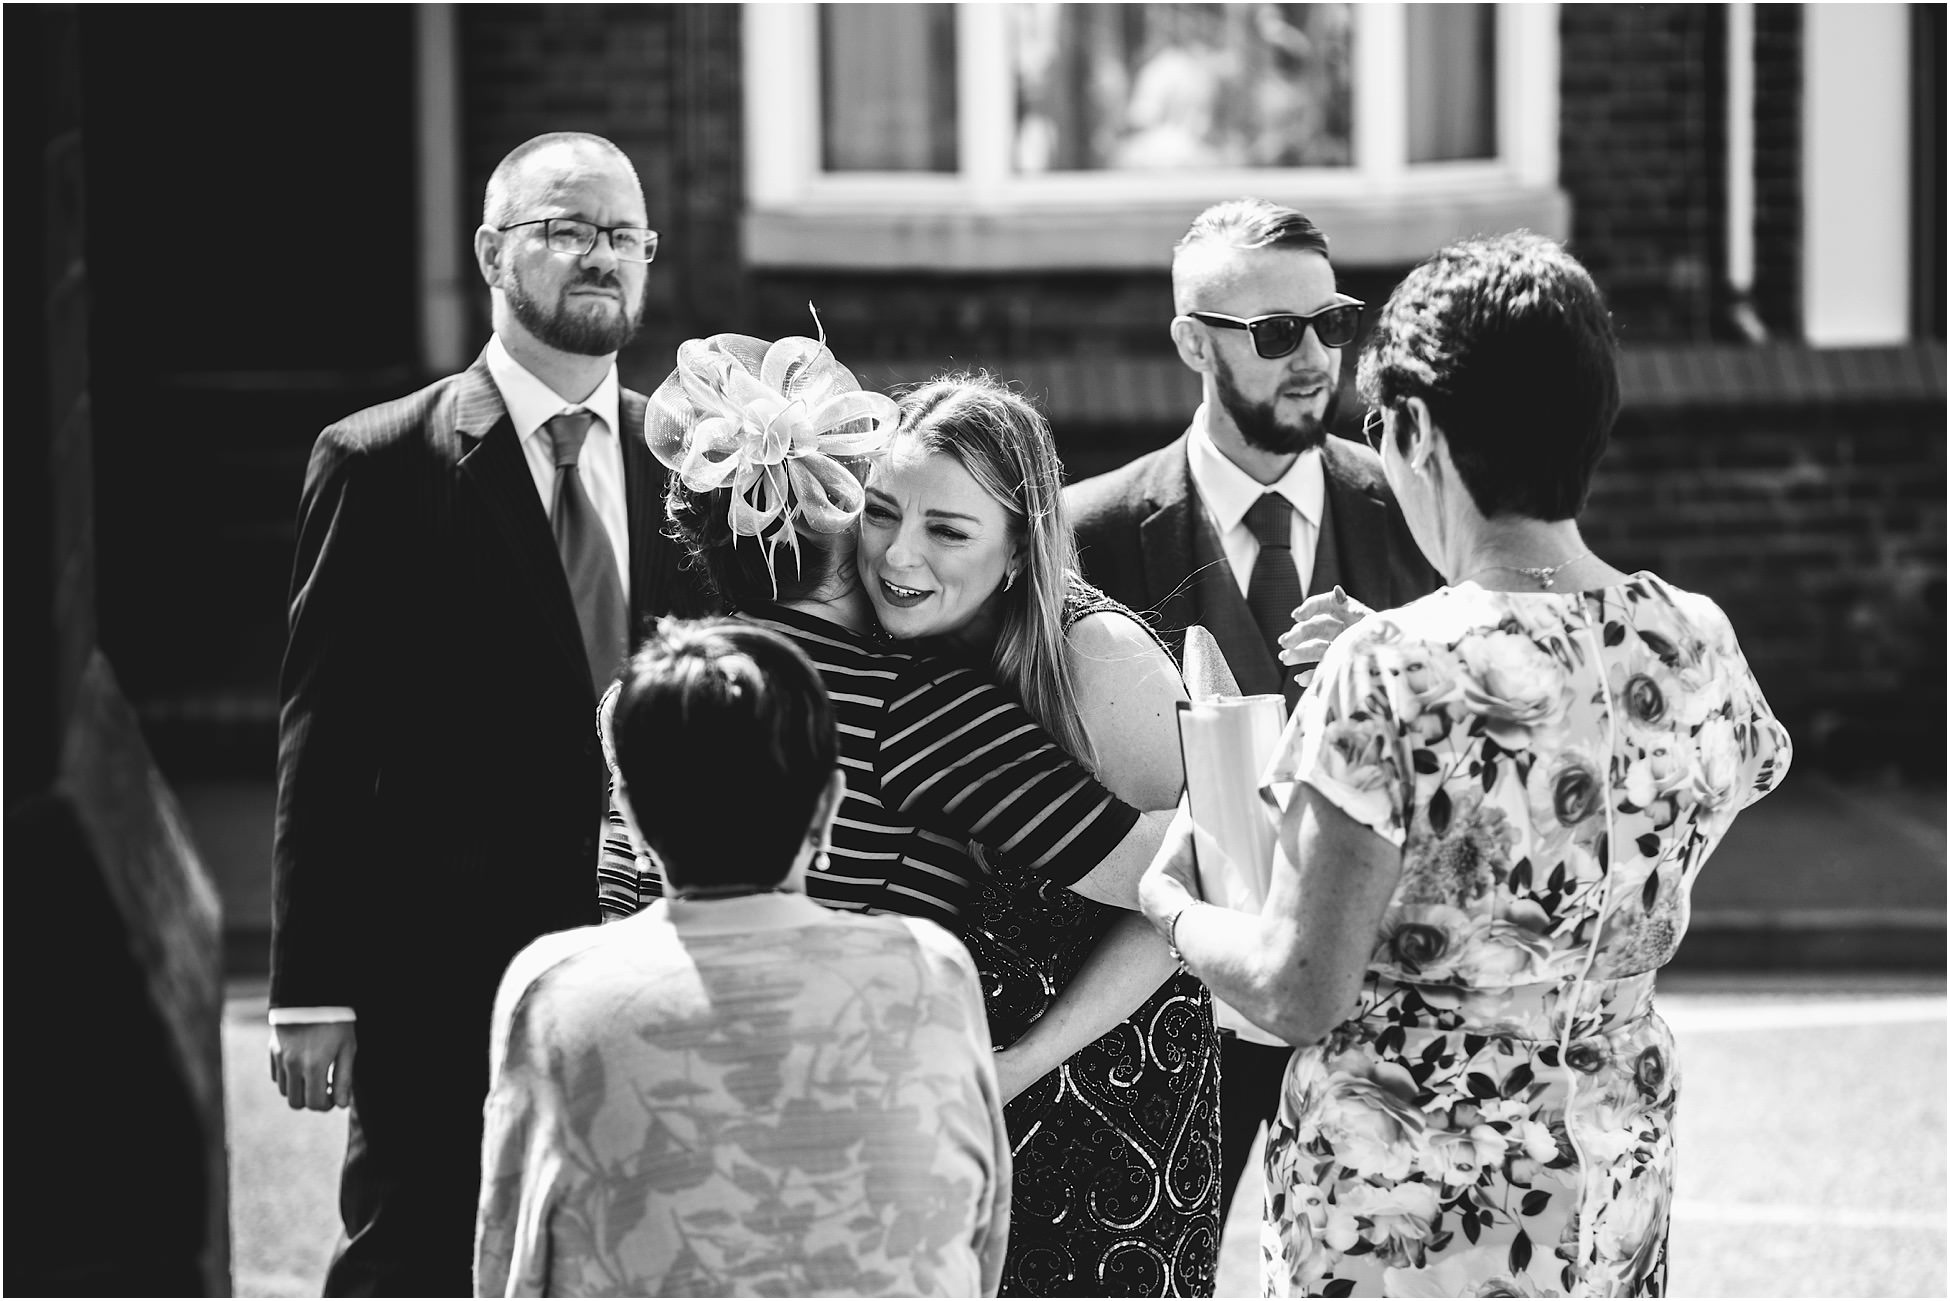 Wedding guests greeting each other outside church